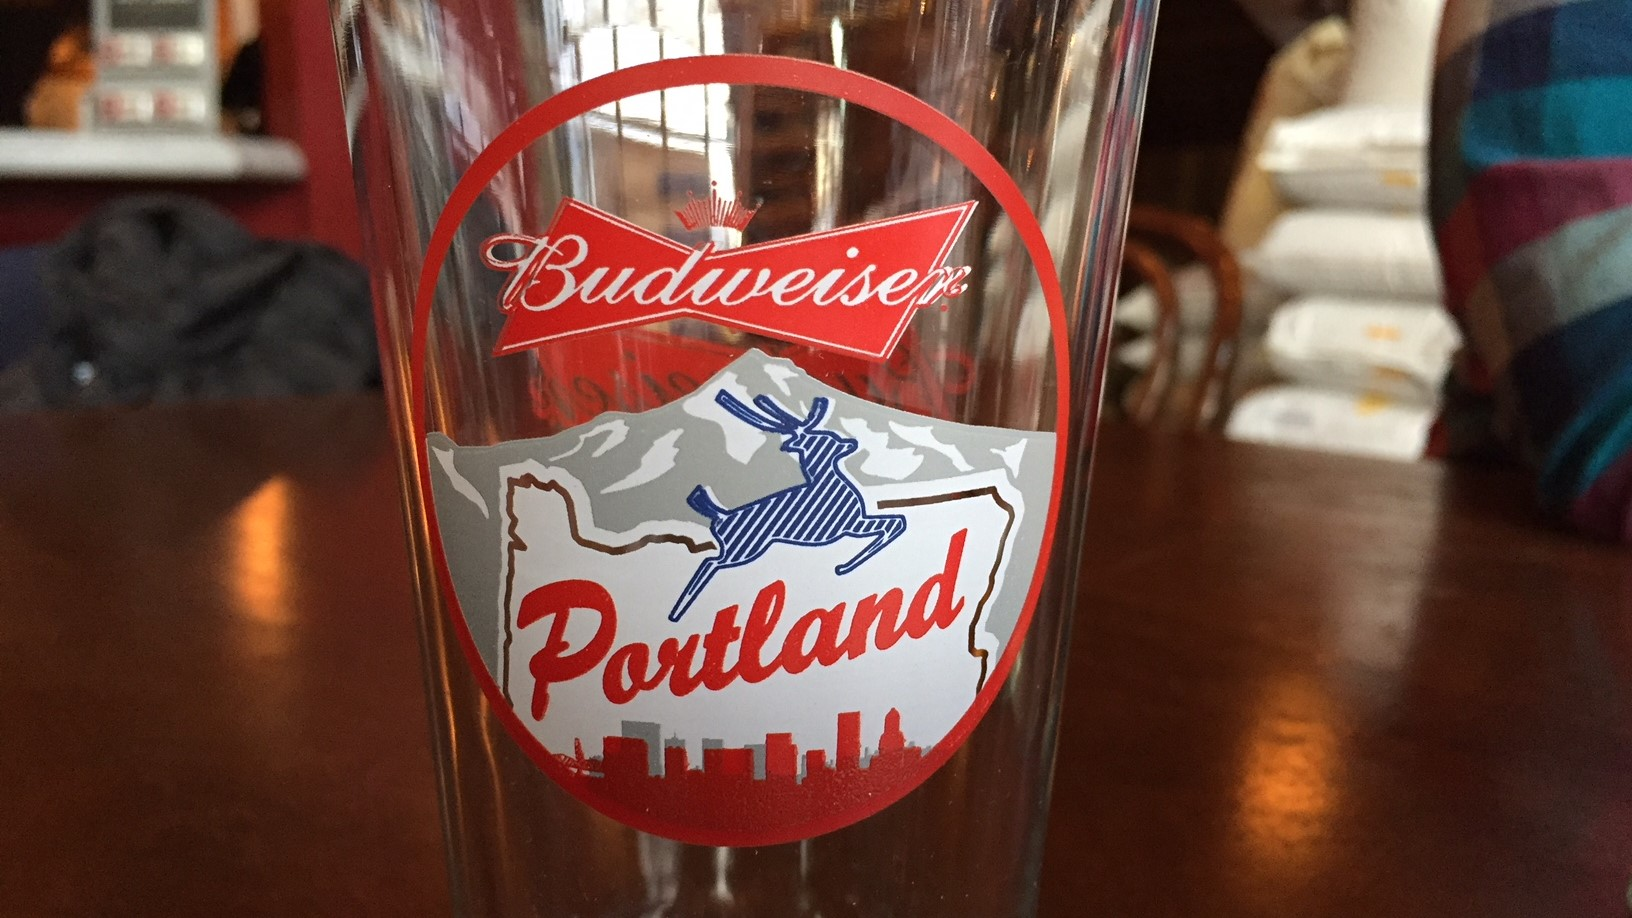 The symbol that got AB InBev a cease-and-desist from Old Town Brewing.